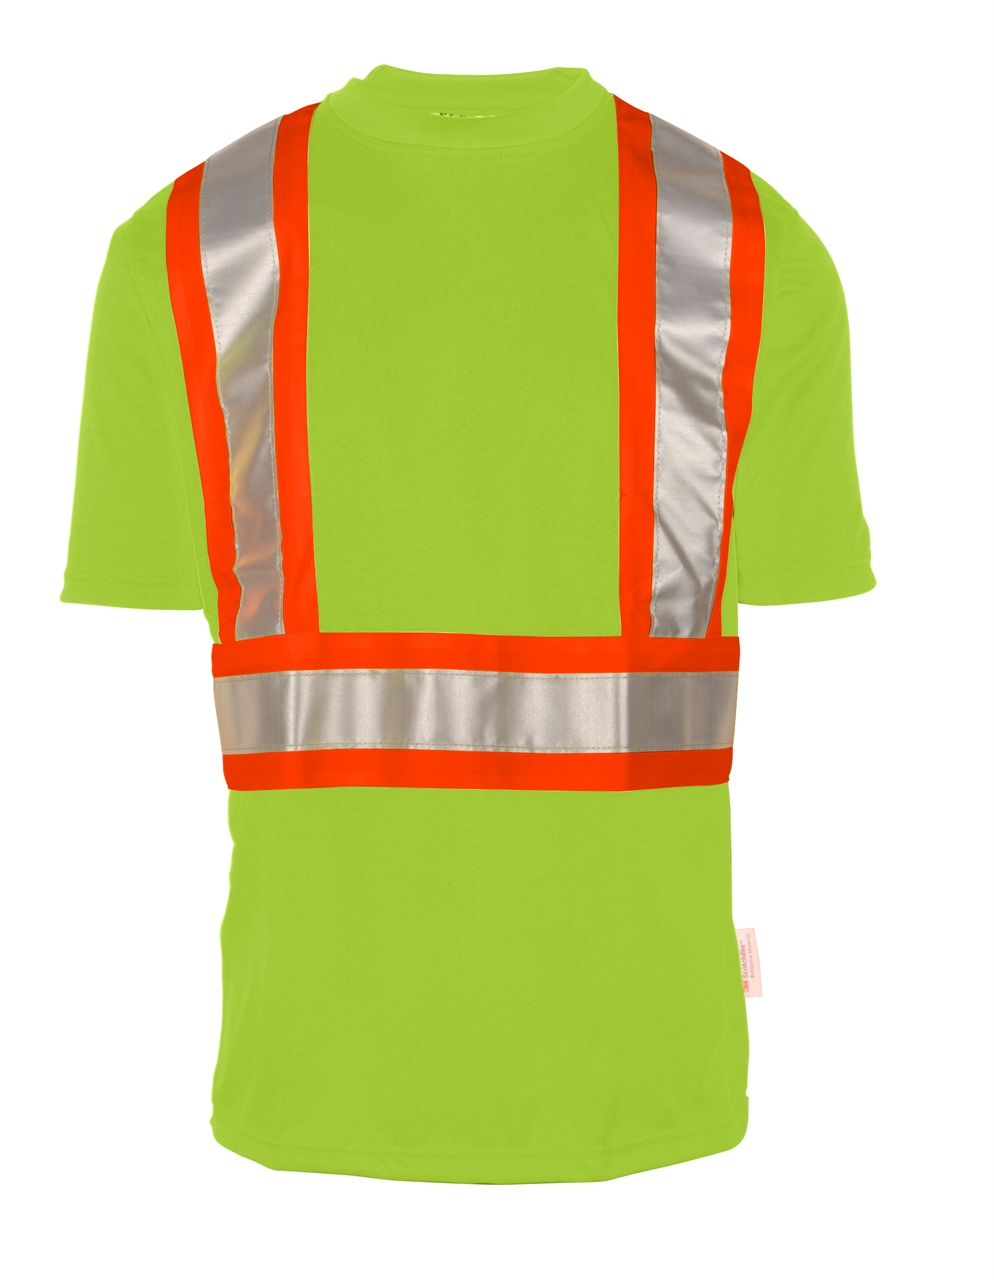 Picture of Sumaggo High Visibility Wicking Shirt With Contrasting Color Stripes